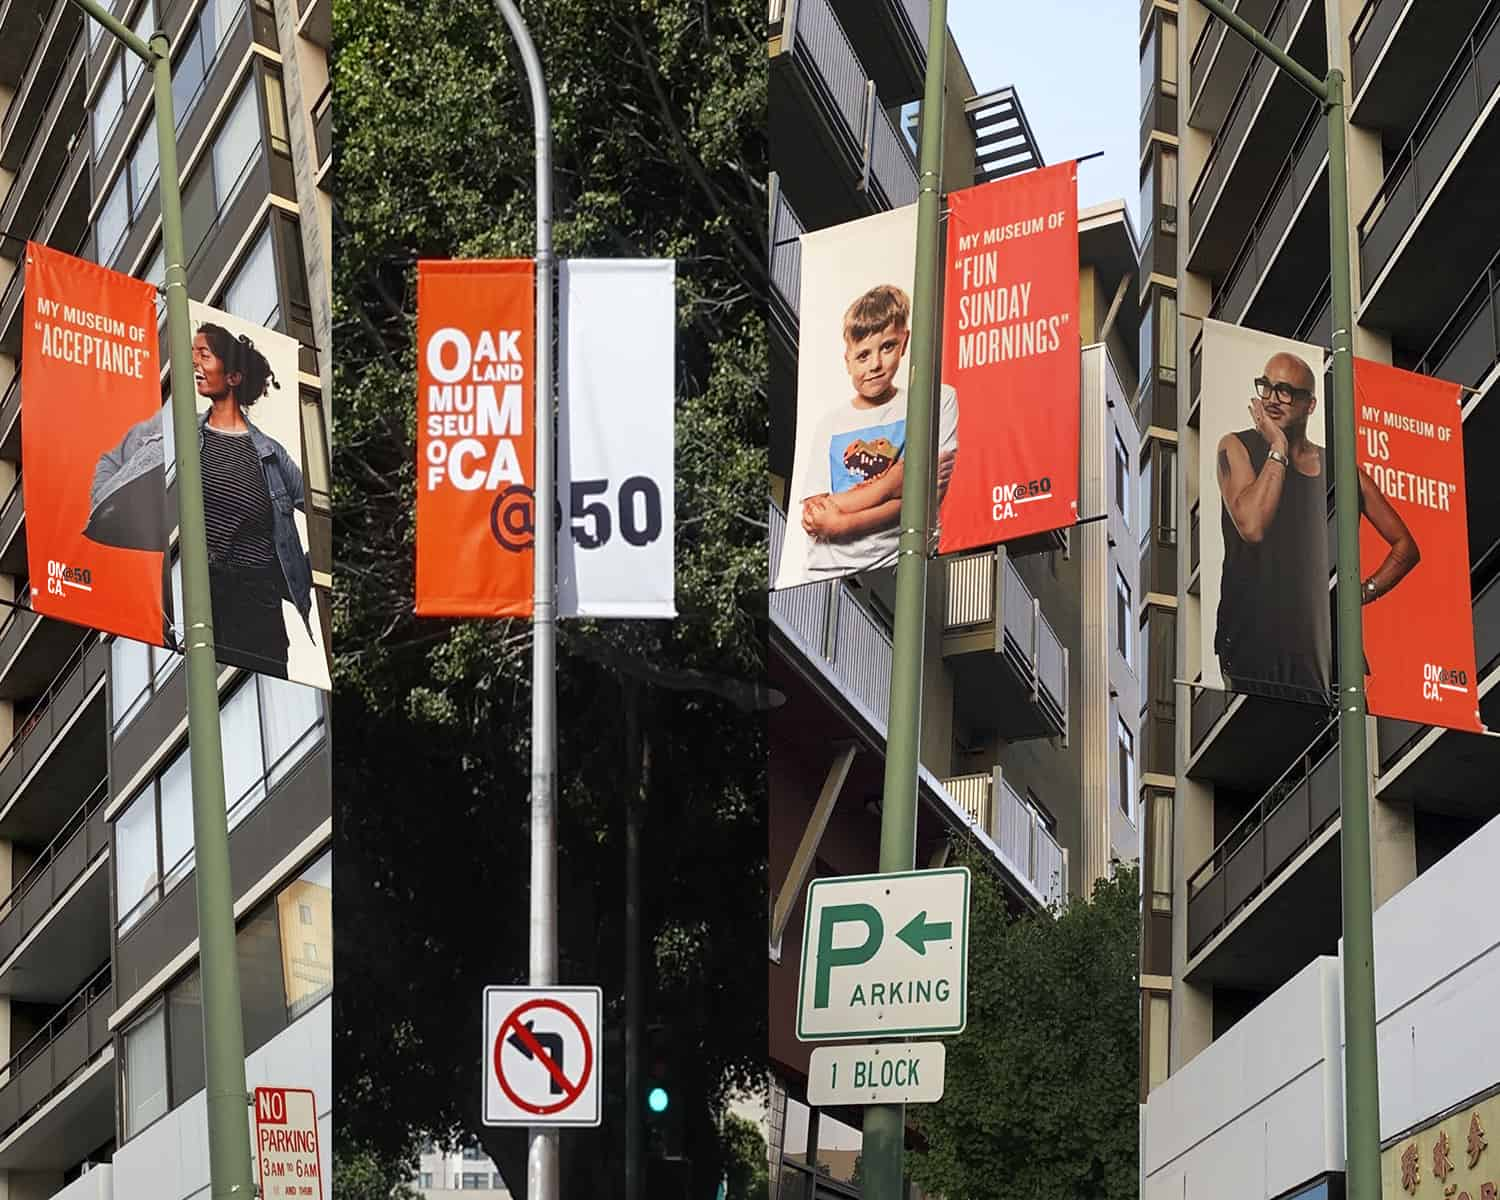 OMCA50 4 banners ONE by ONE Community Portrait